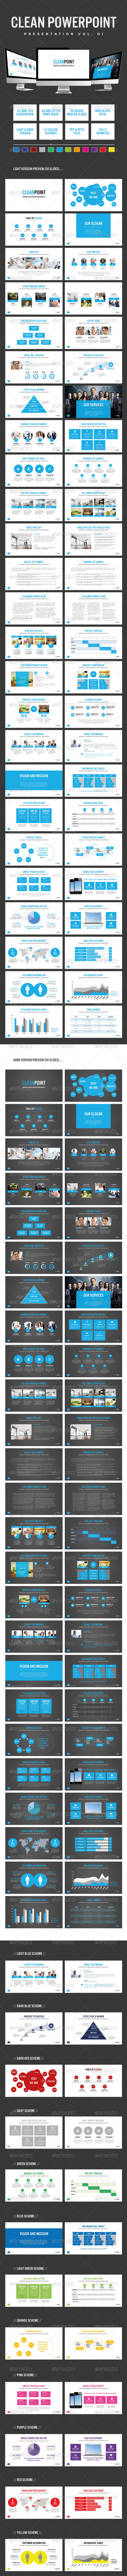 GraphicRiver 50 Slides Presentation Vol 01 6494920